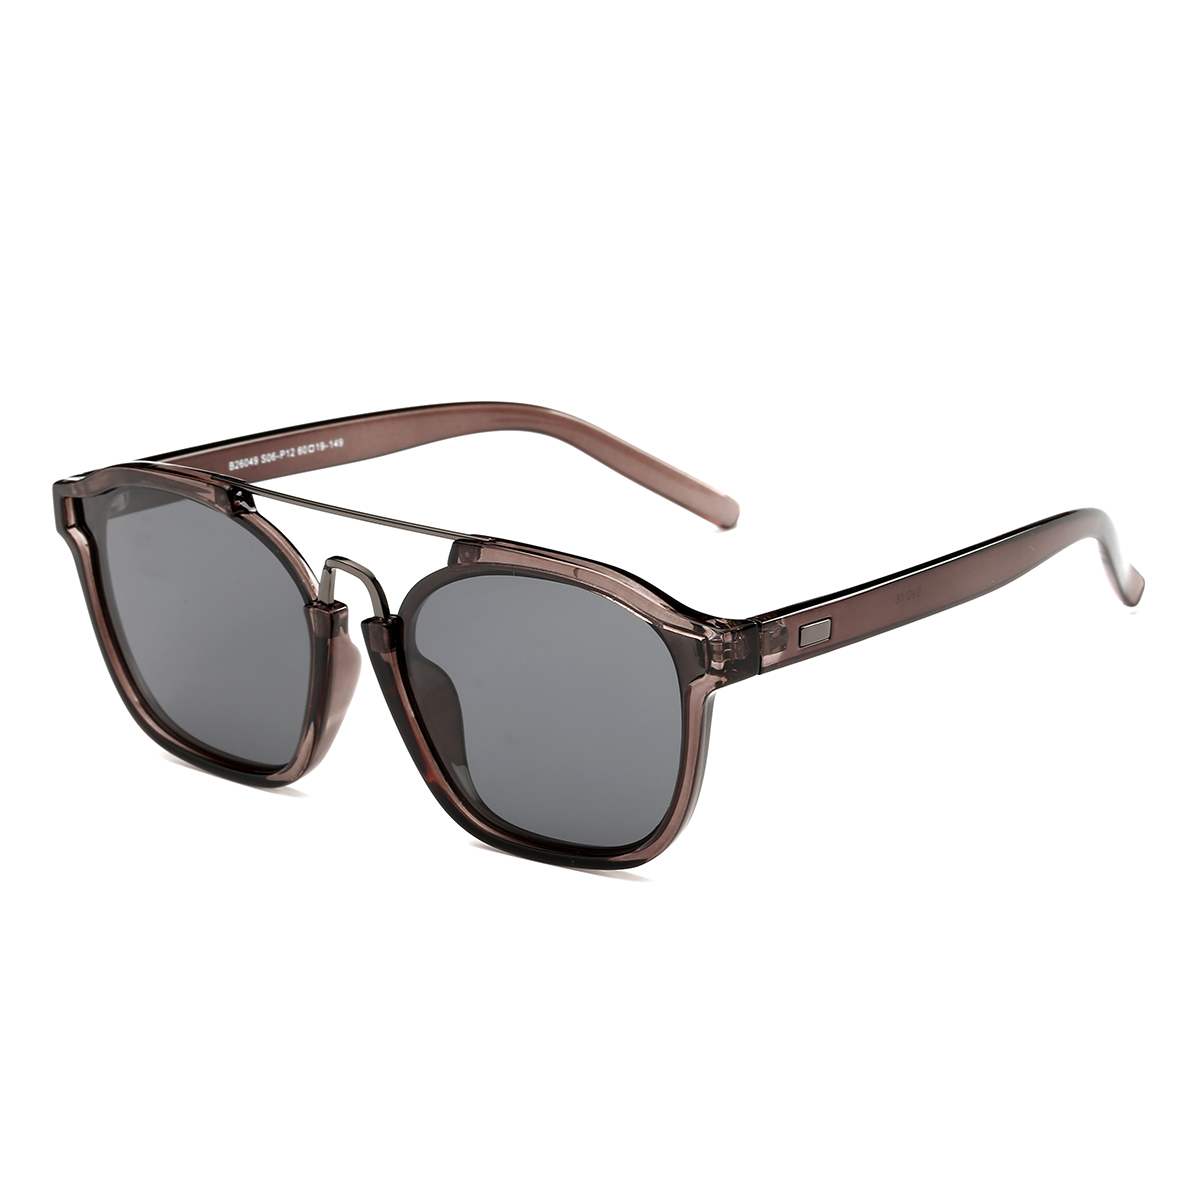 Dasein Retro Square Sunglasses